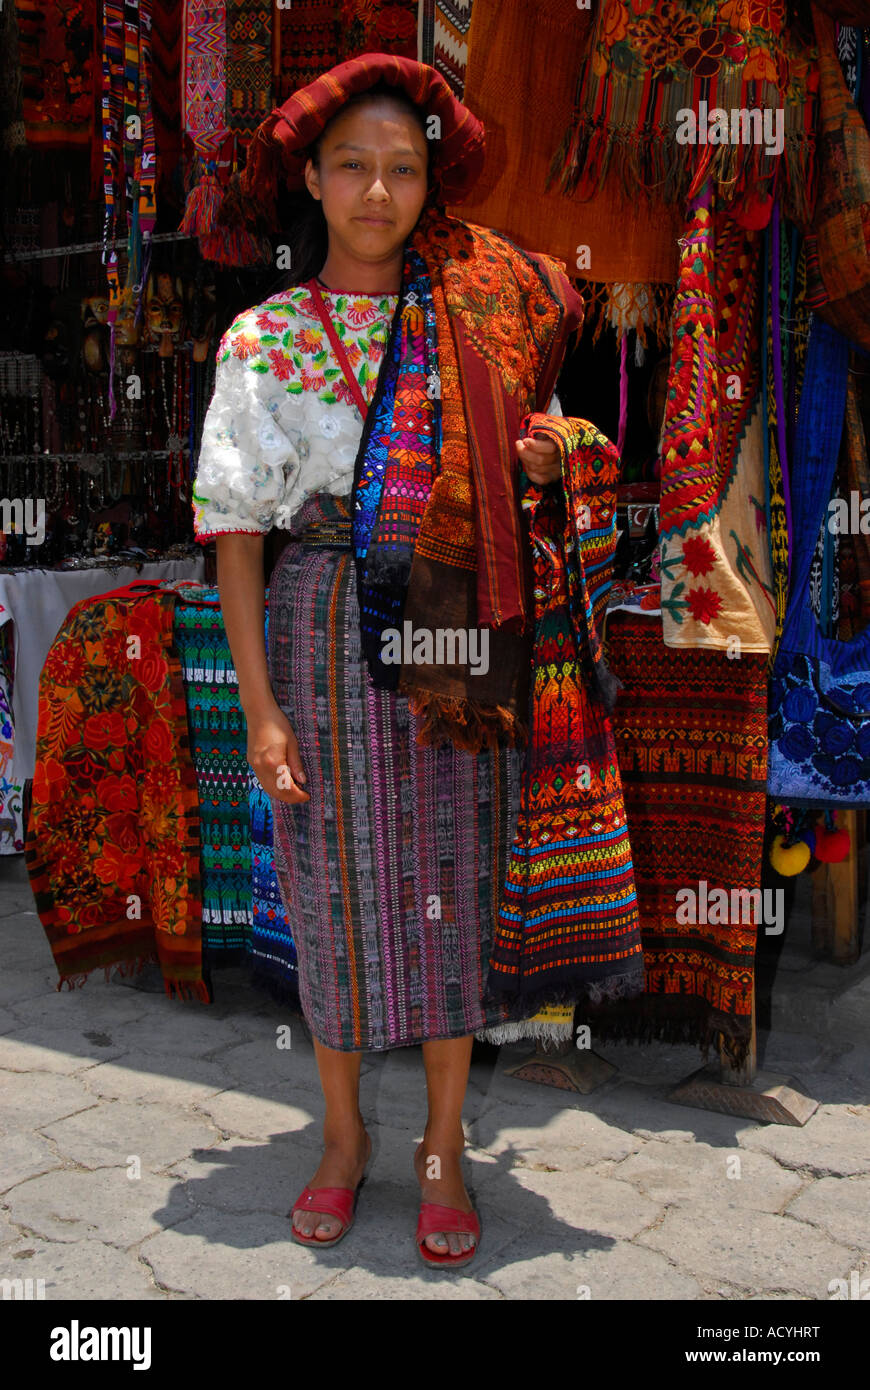 Indigenous woman selling textiles on the market in Chichicastenango, Guatemala, Central AmericaStock Photo